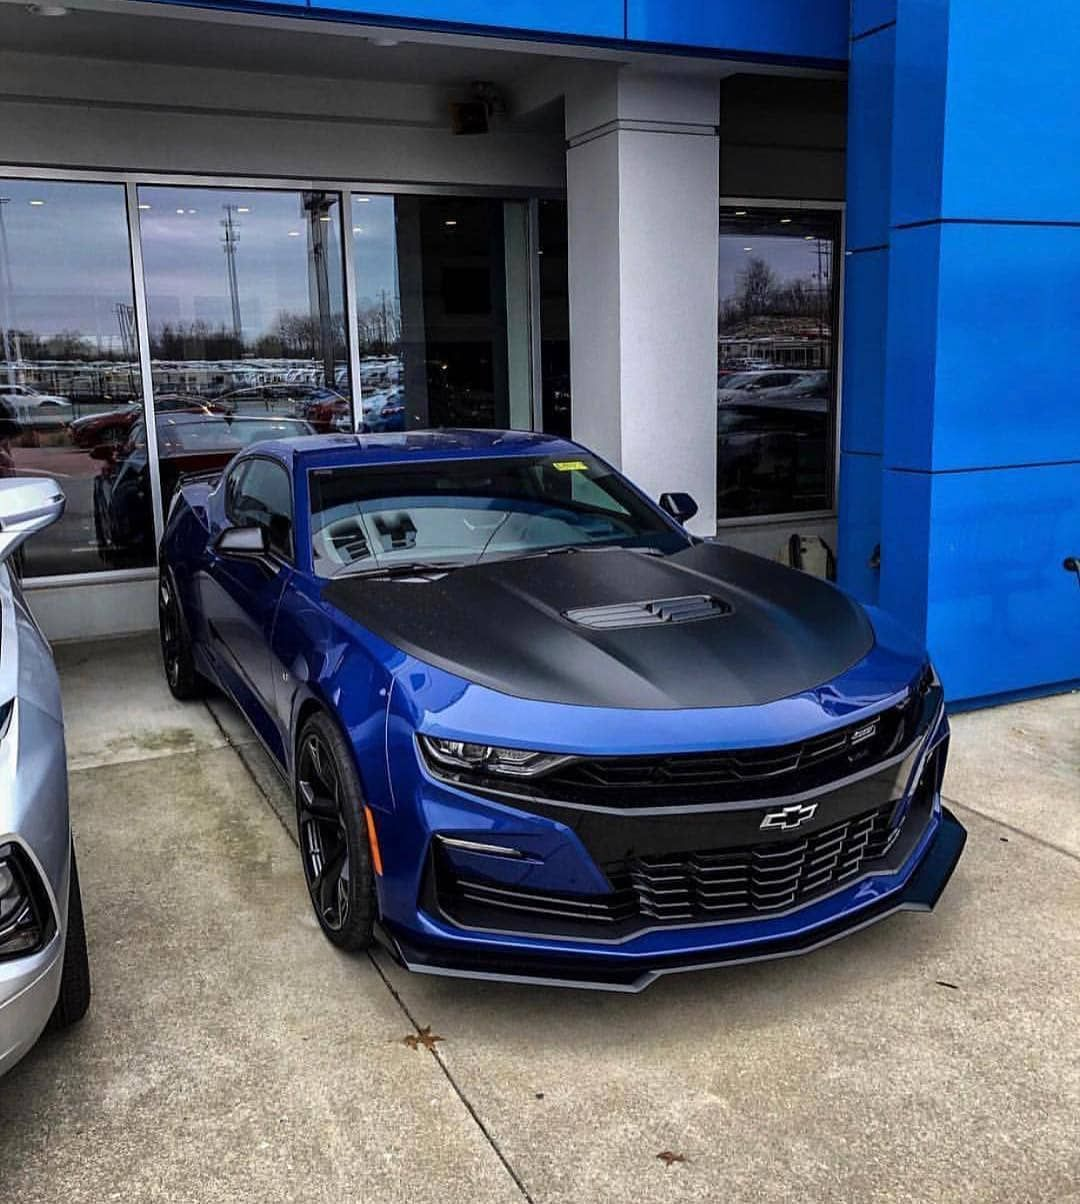 2019 Chevy Camero 1lt V8 Super Charged Parker S True Life Dream